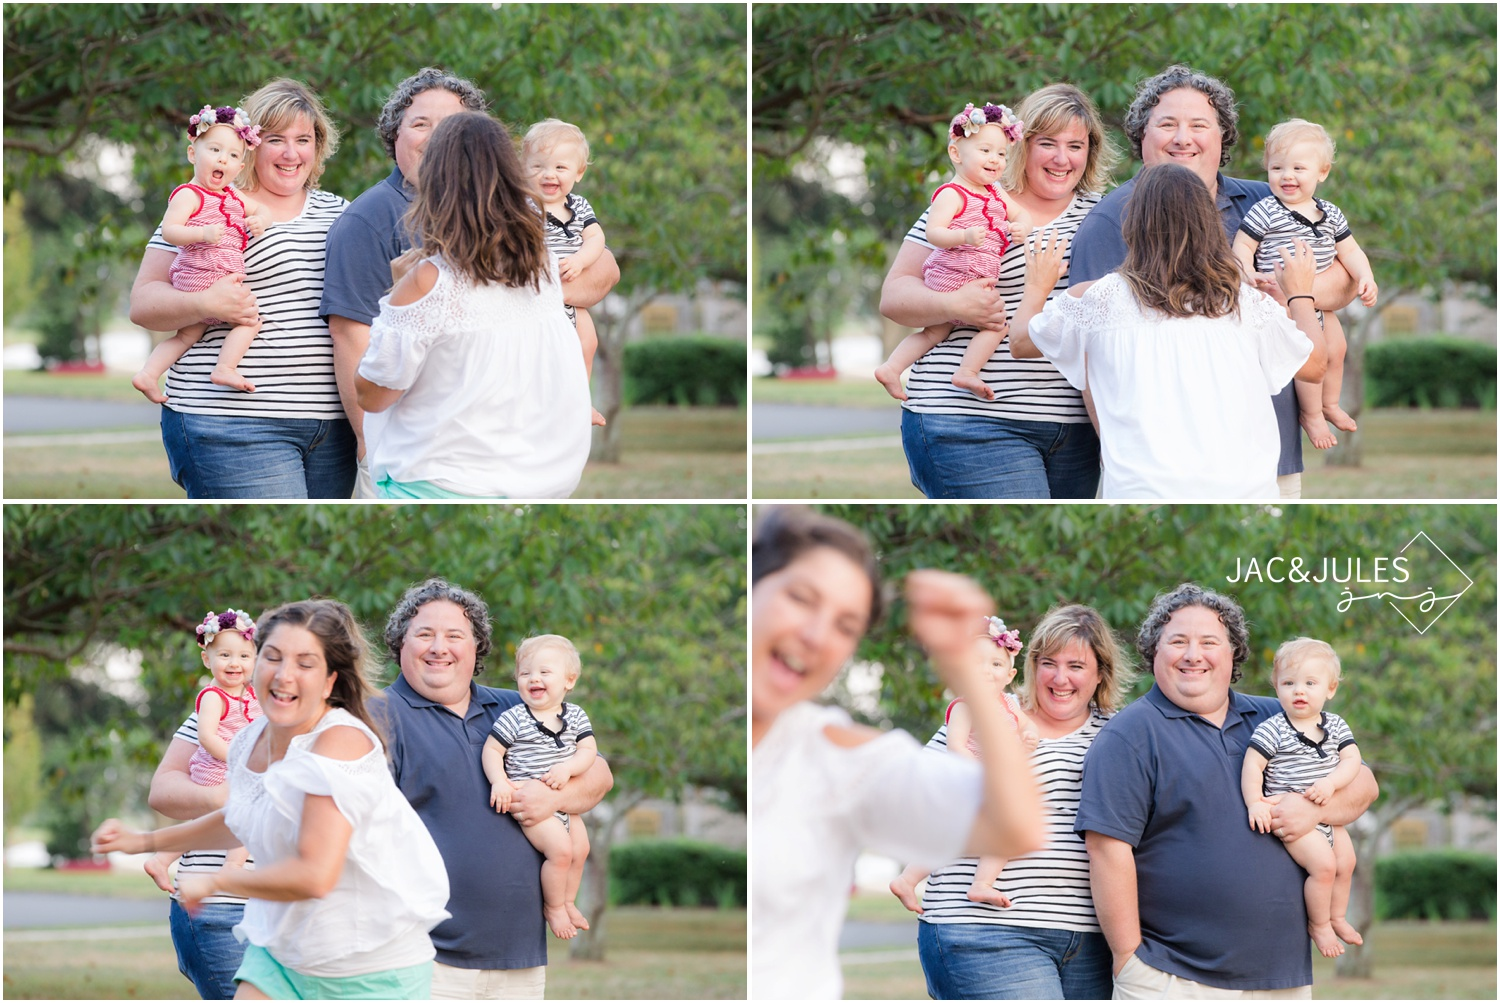 behind the scenes of photographer gaining expressions during a family photo session